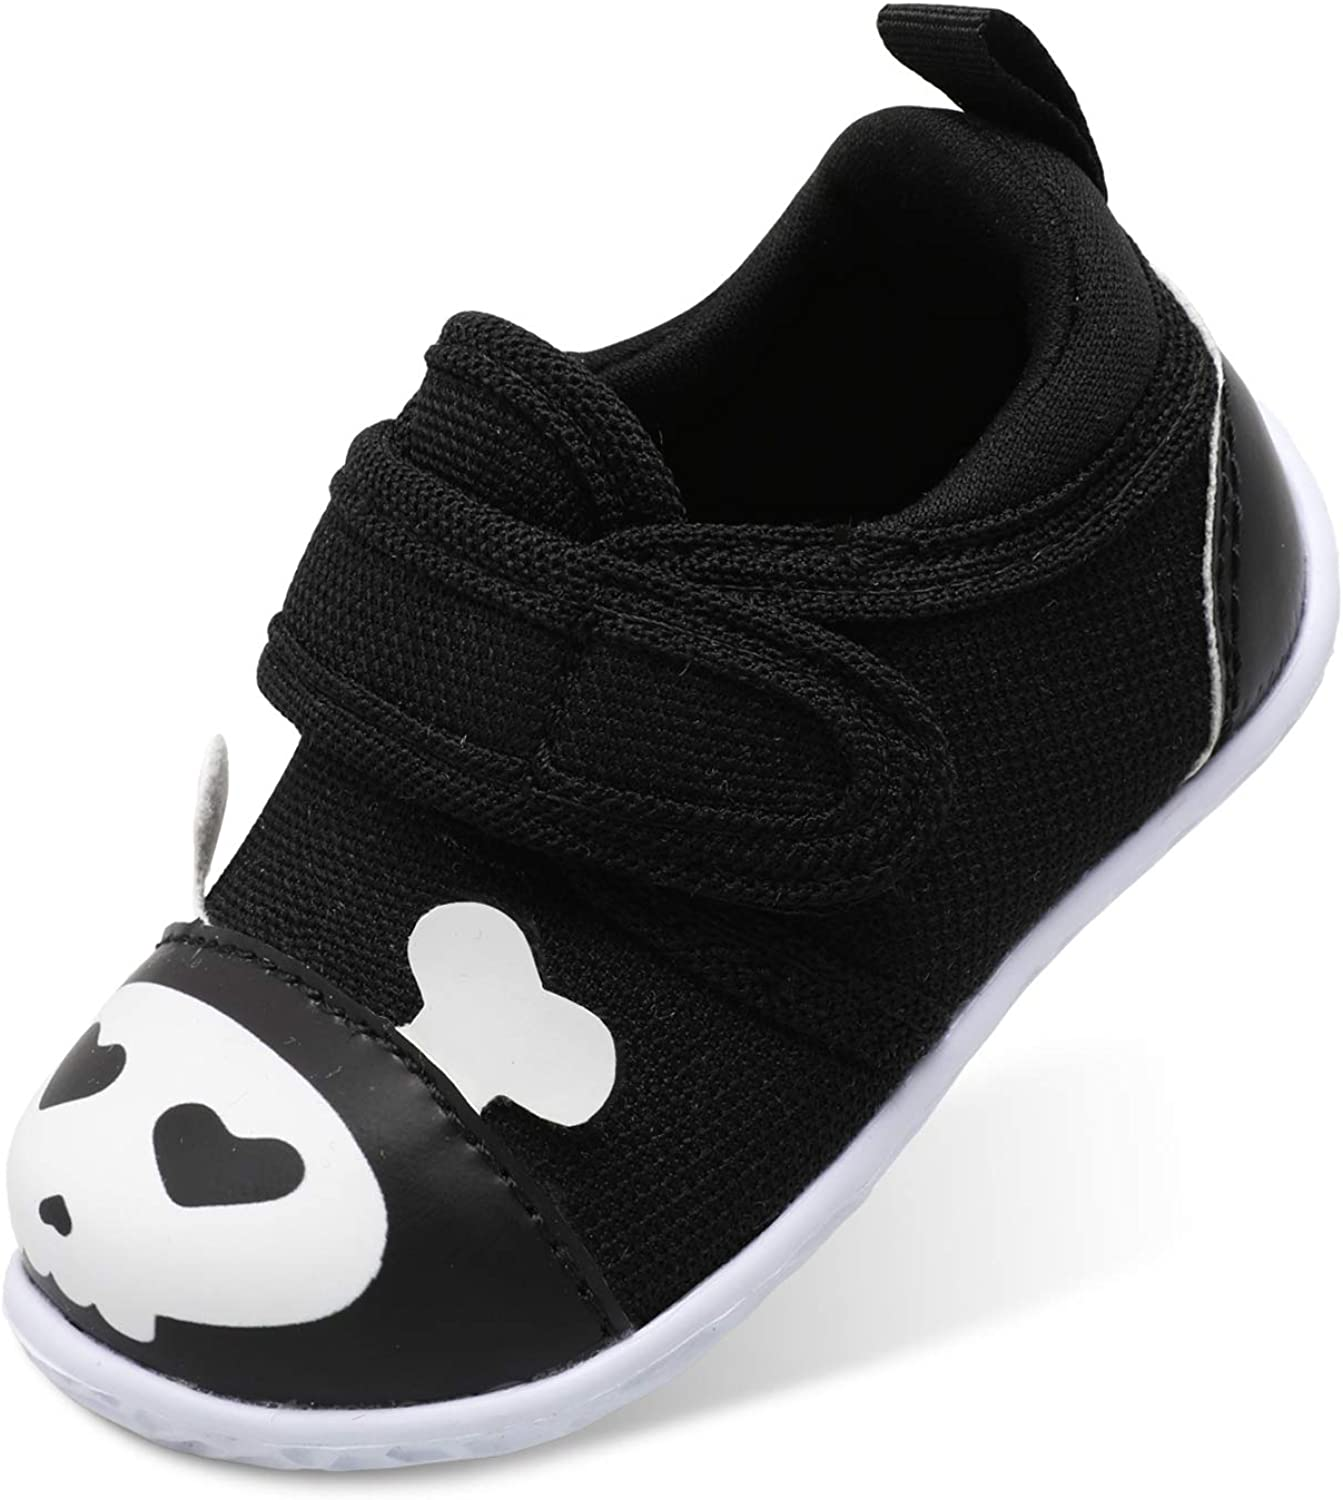 Scurtain Unisex Walking Shoes for Baby Boys Baby Girls Toddlers Sneaker for Infant Newborn with Anti-Slip Sole Toddler Slippers Toddler Shoes Toddler Walking Shoes Baby Walker